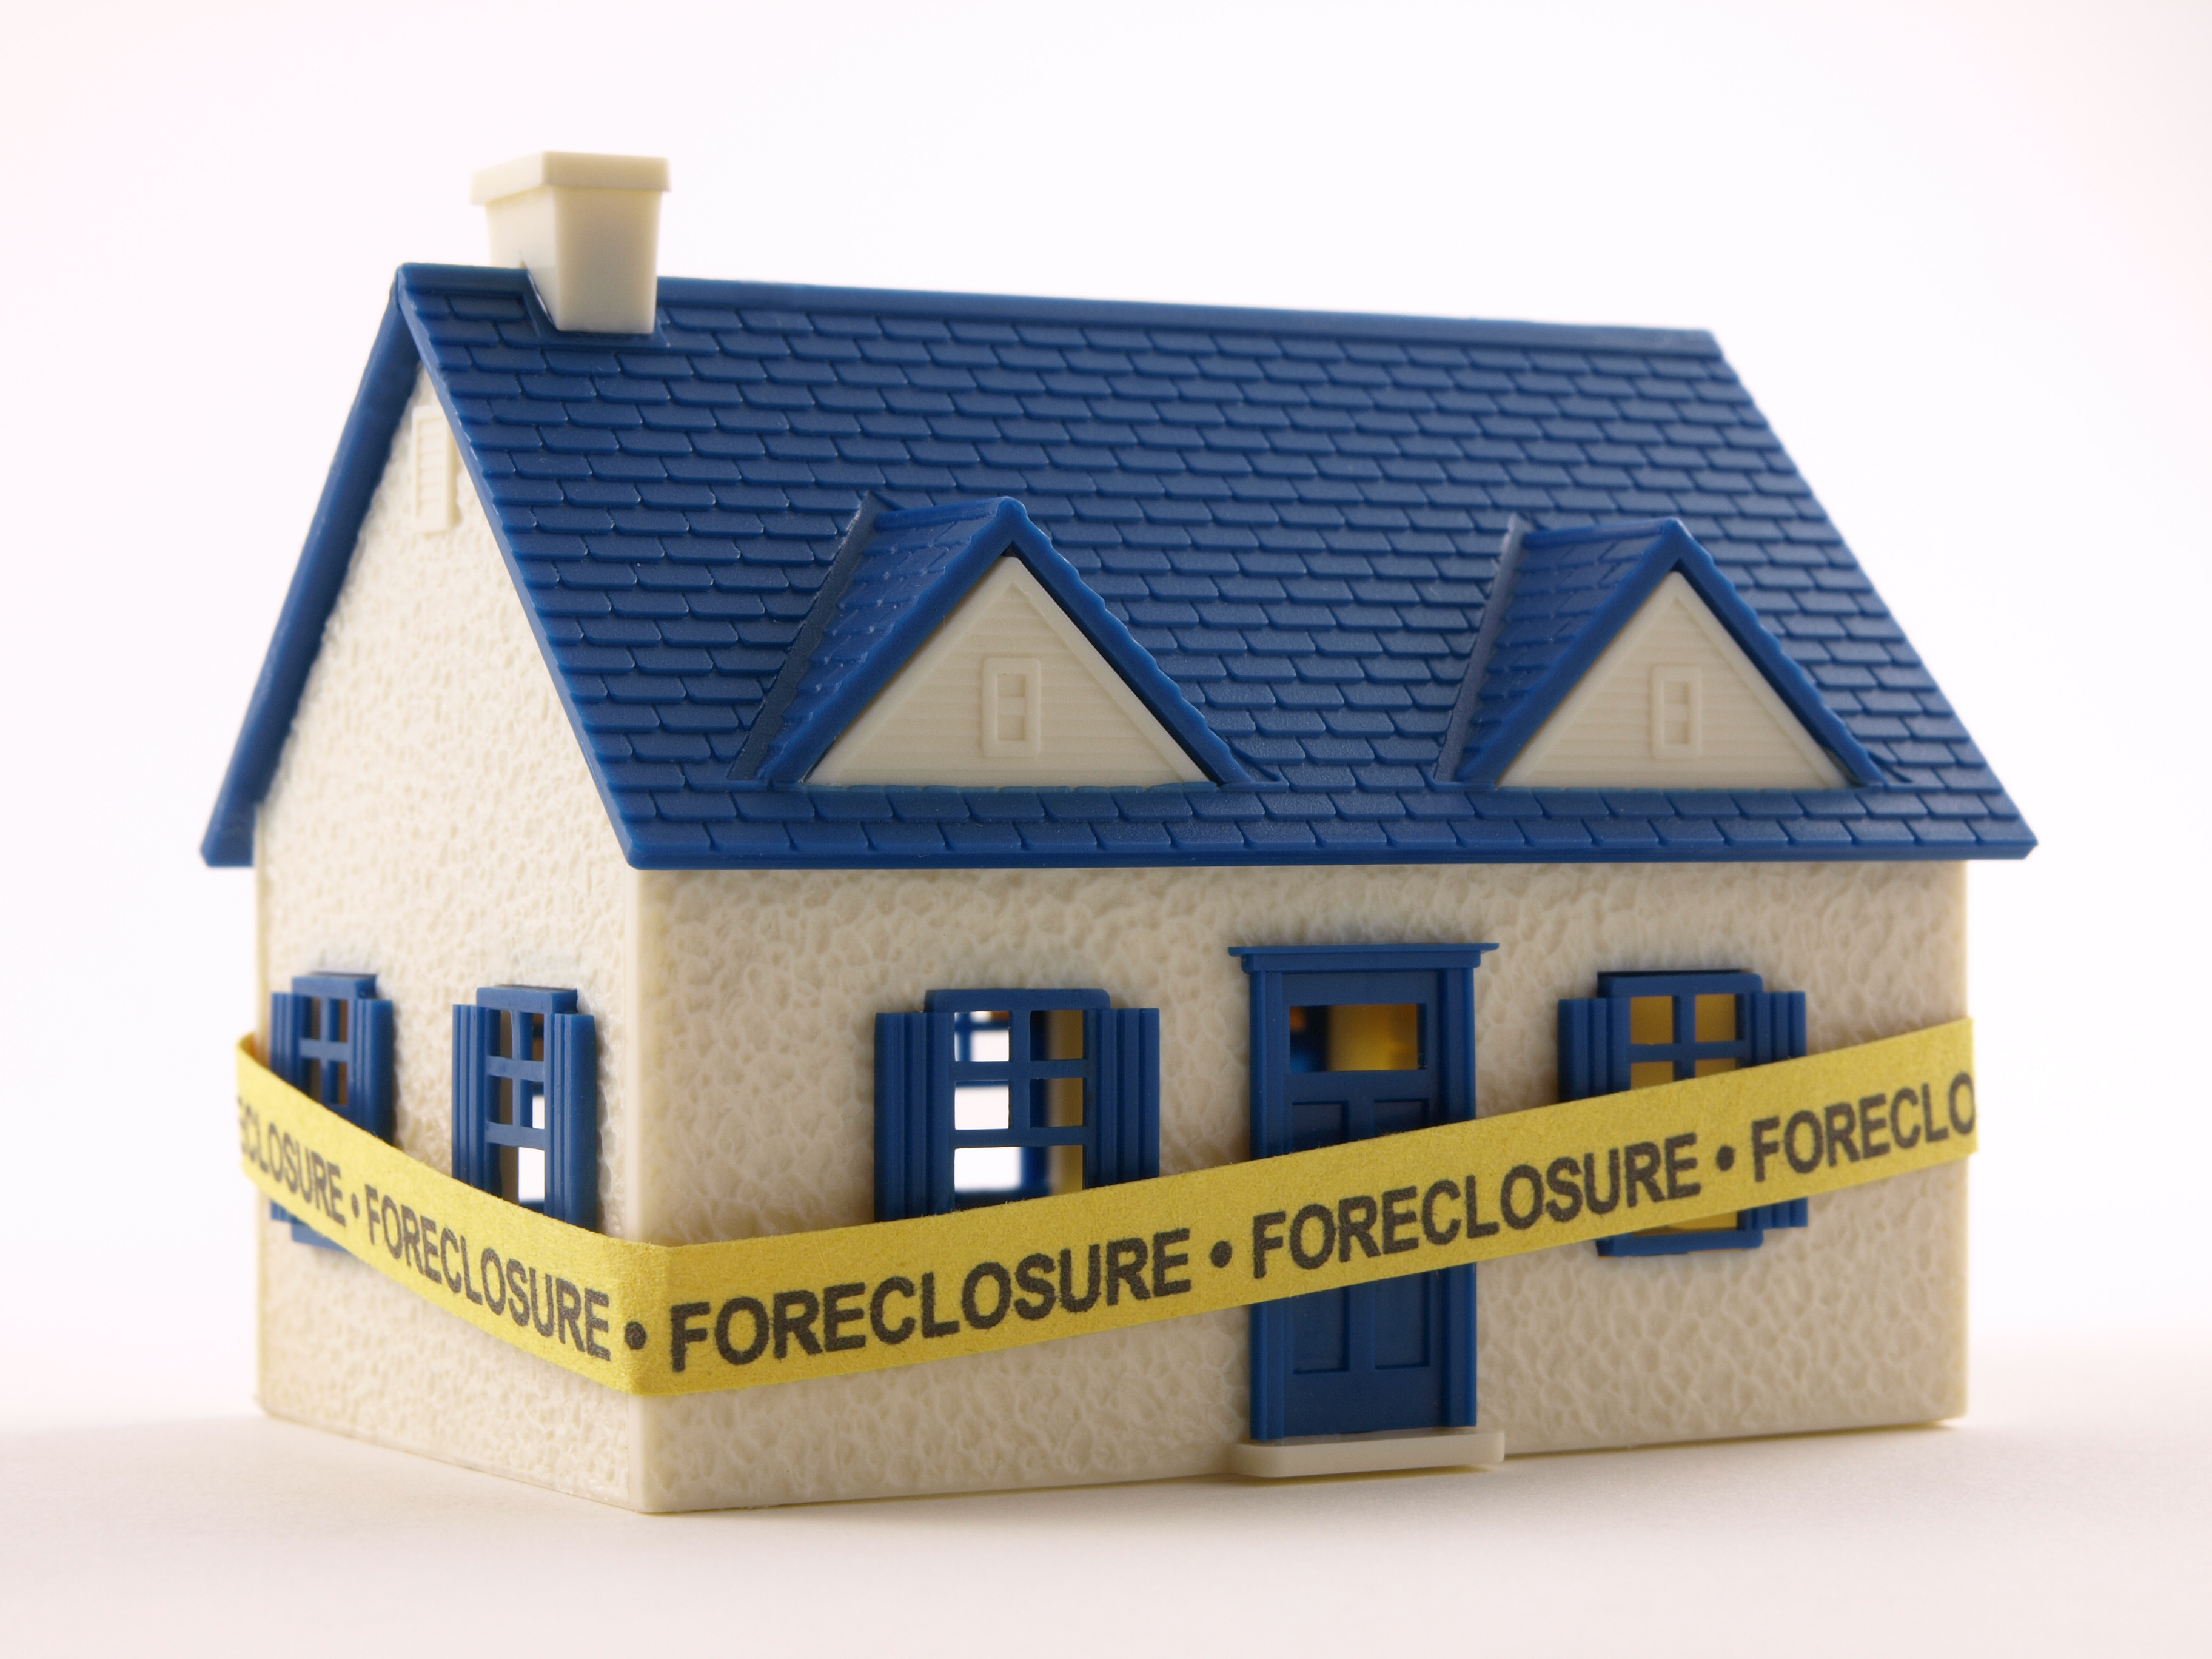 State home foreclosure prevention project